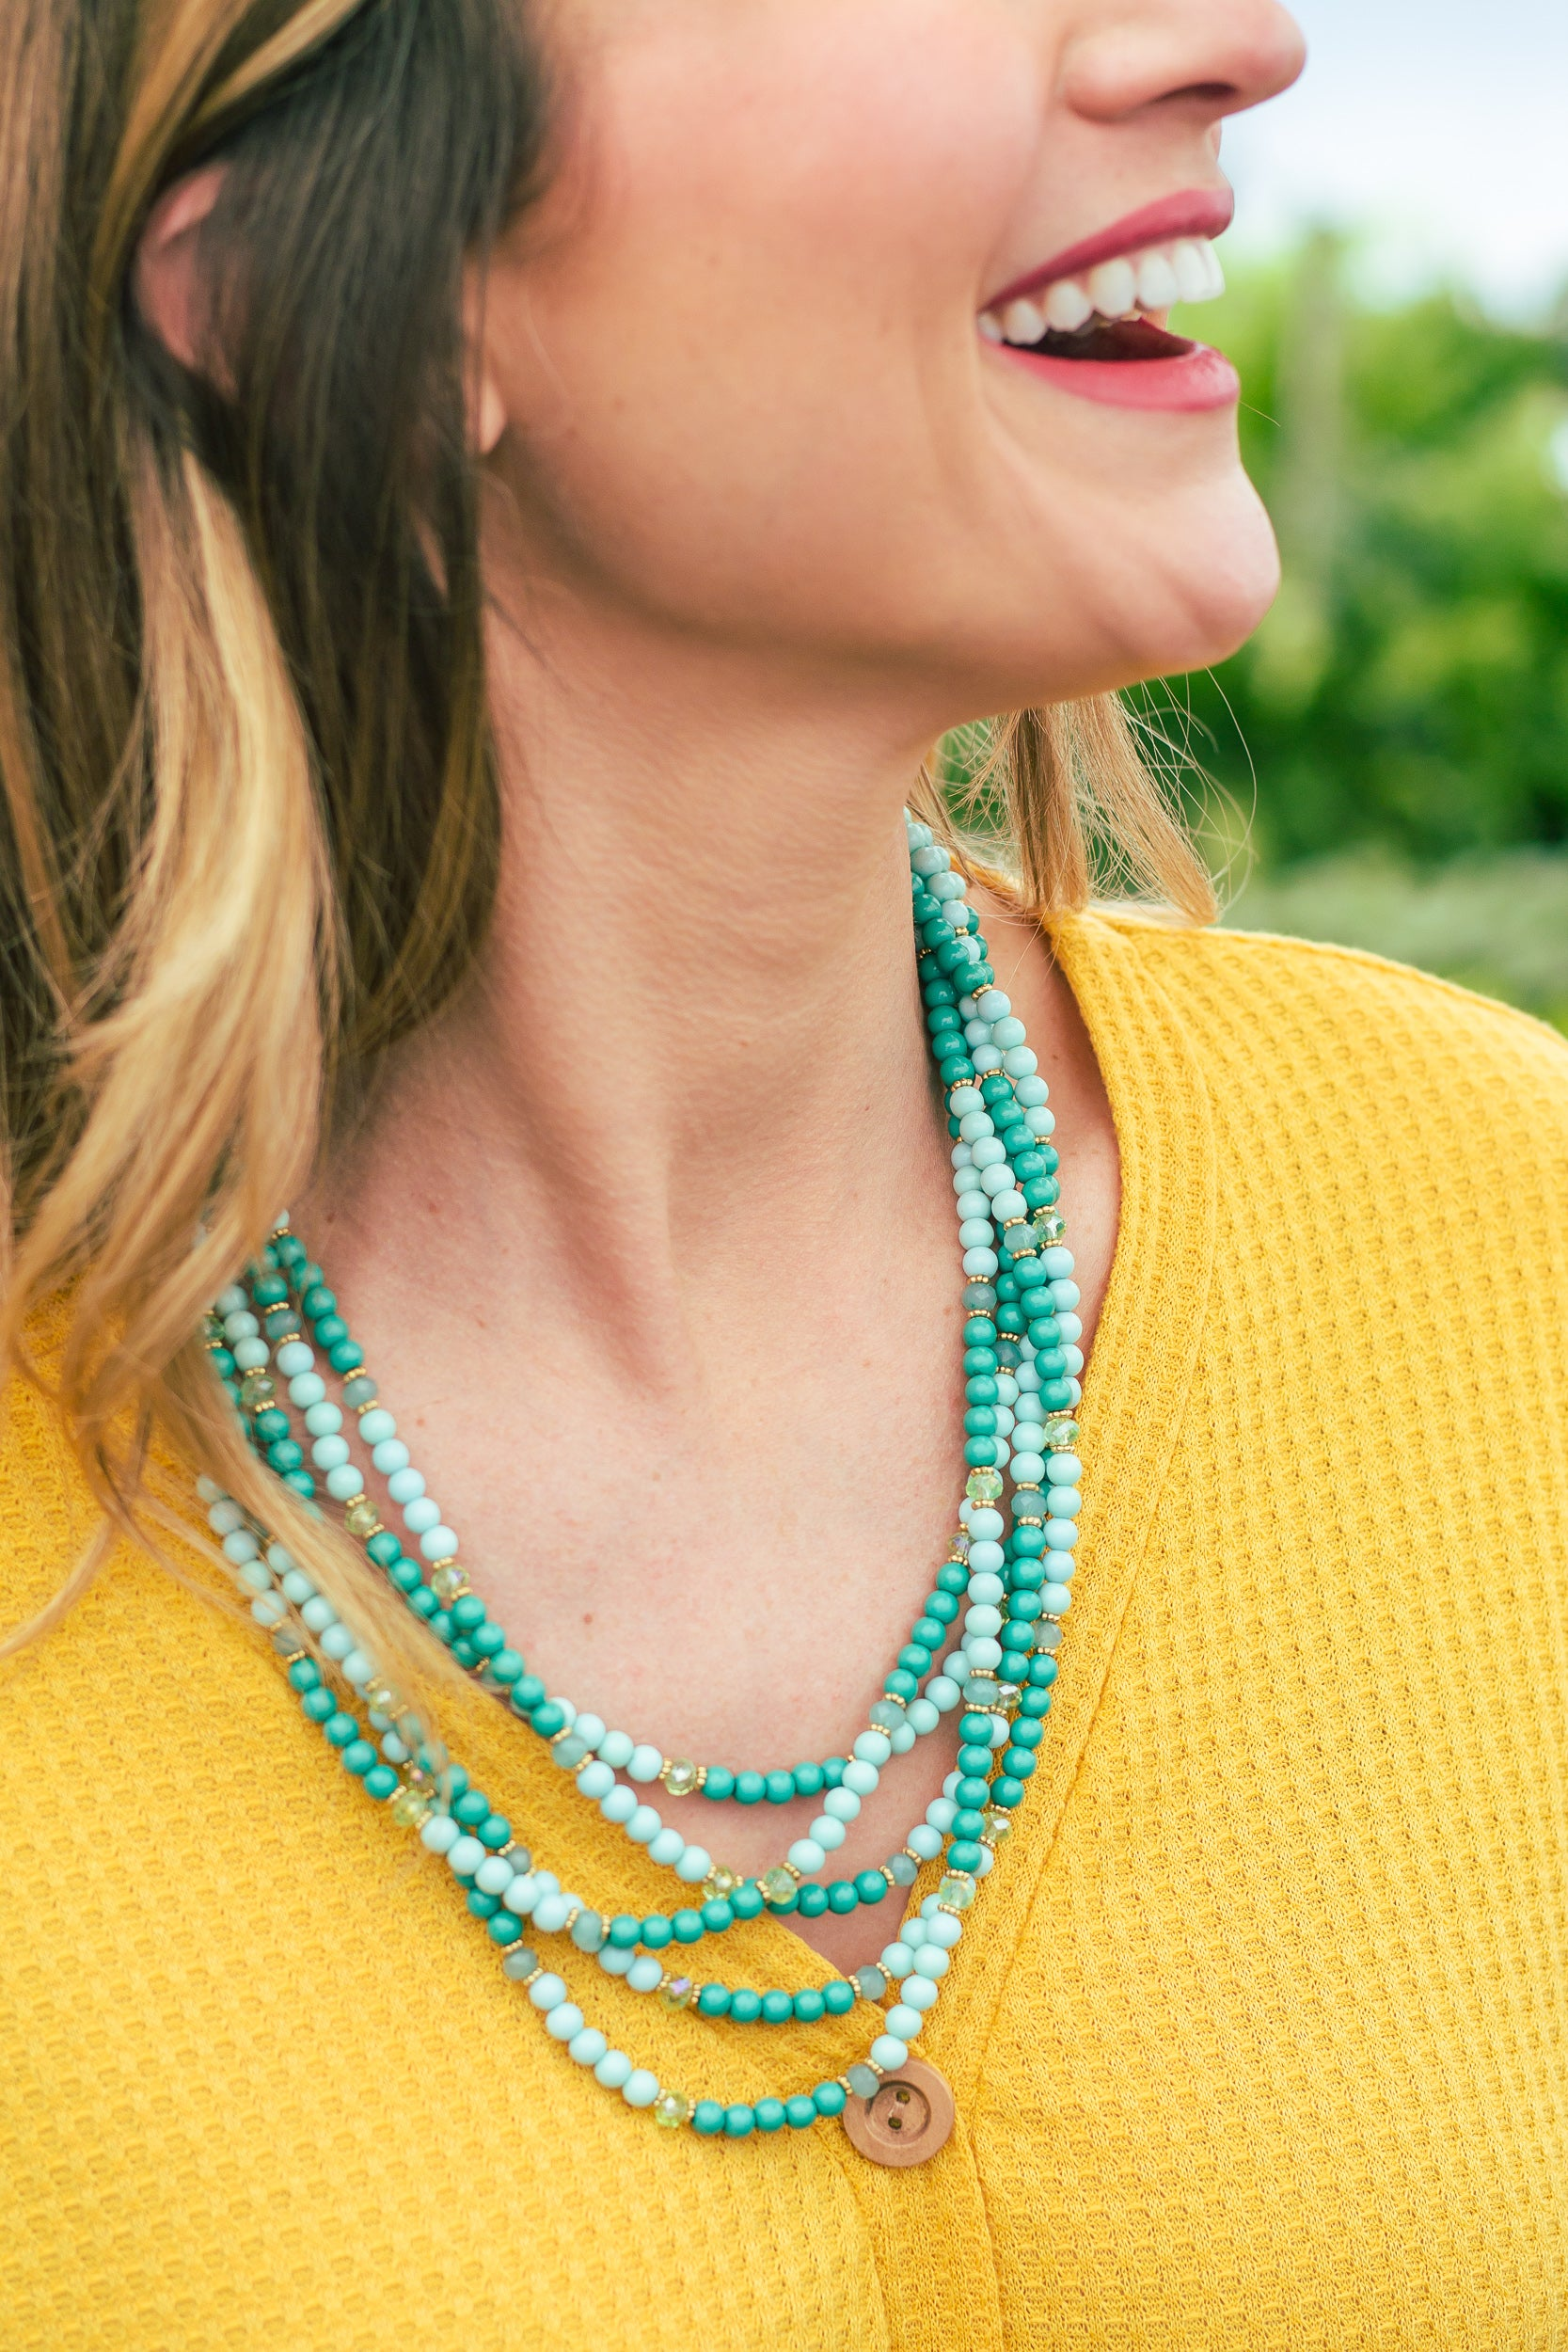 Teal & Mint Beaded Necklace